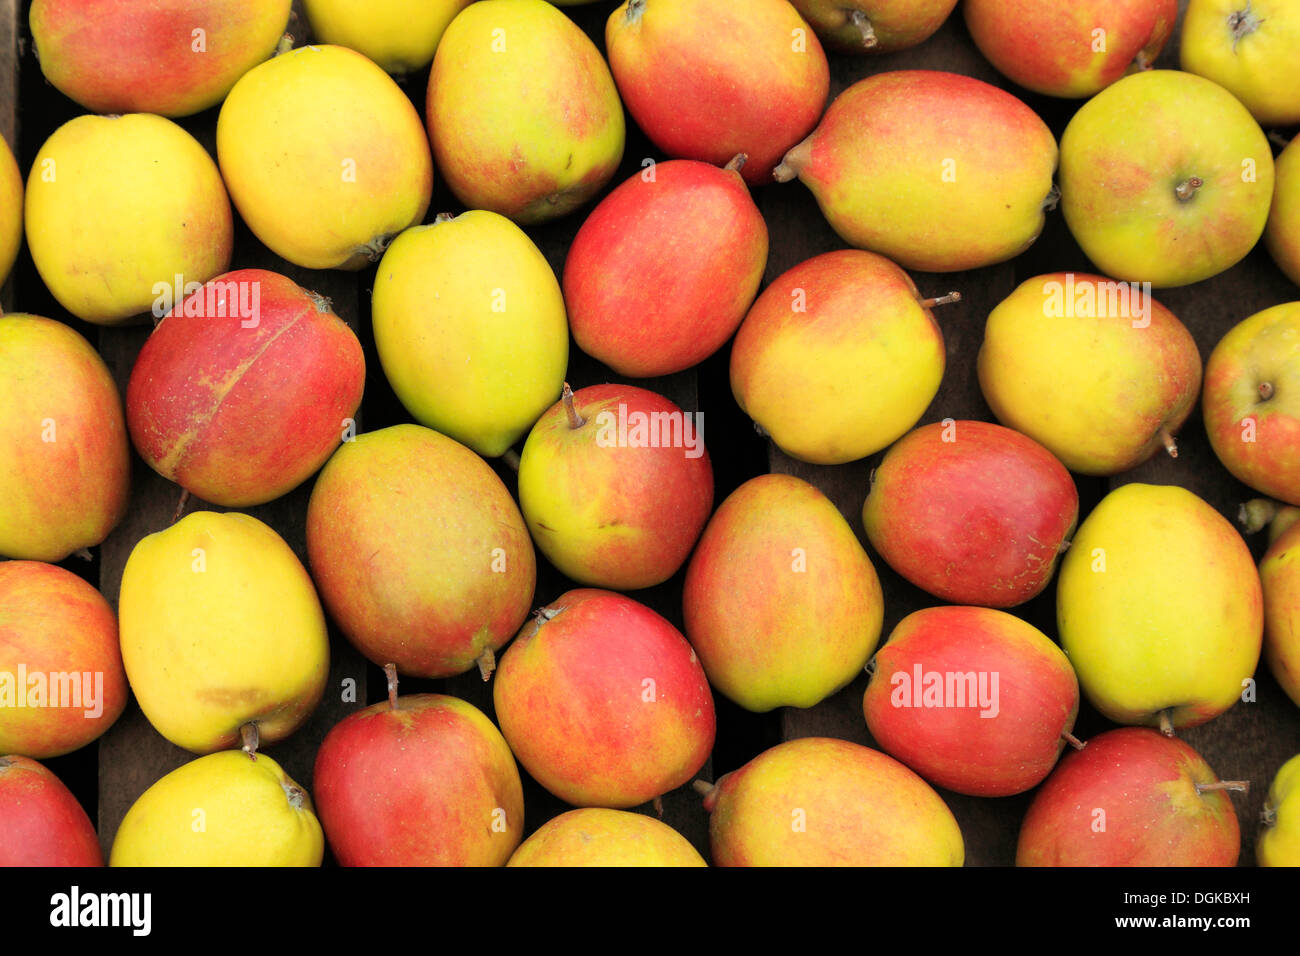 Apple 'Oaken Pin' in farm shop display, picked harvested apples tray named variety varieties - Stock Image